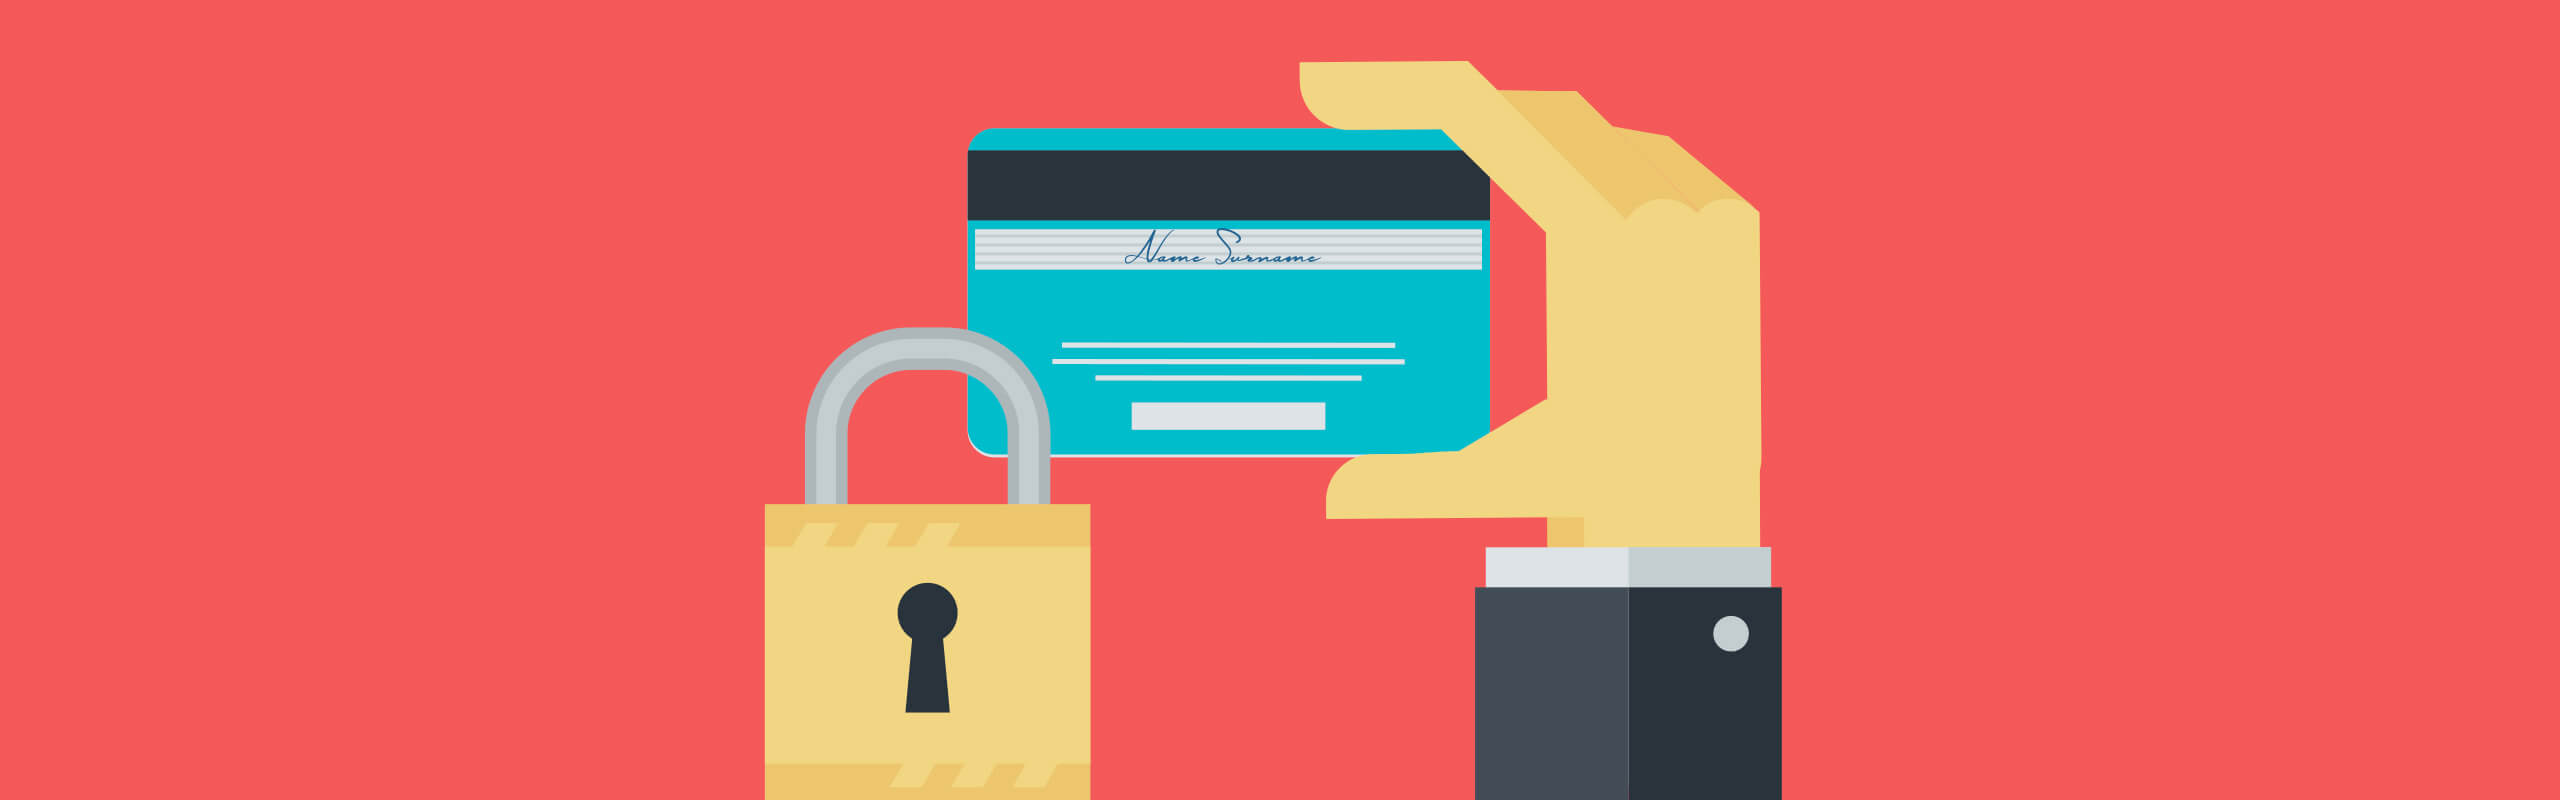 PCI DSS Compliance Insight - Overview for E-Commerce